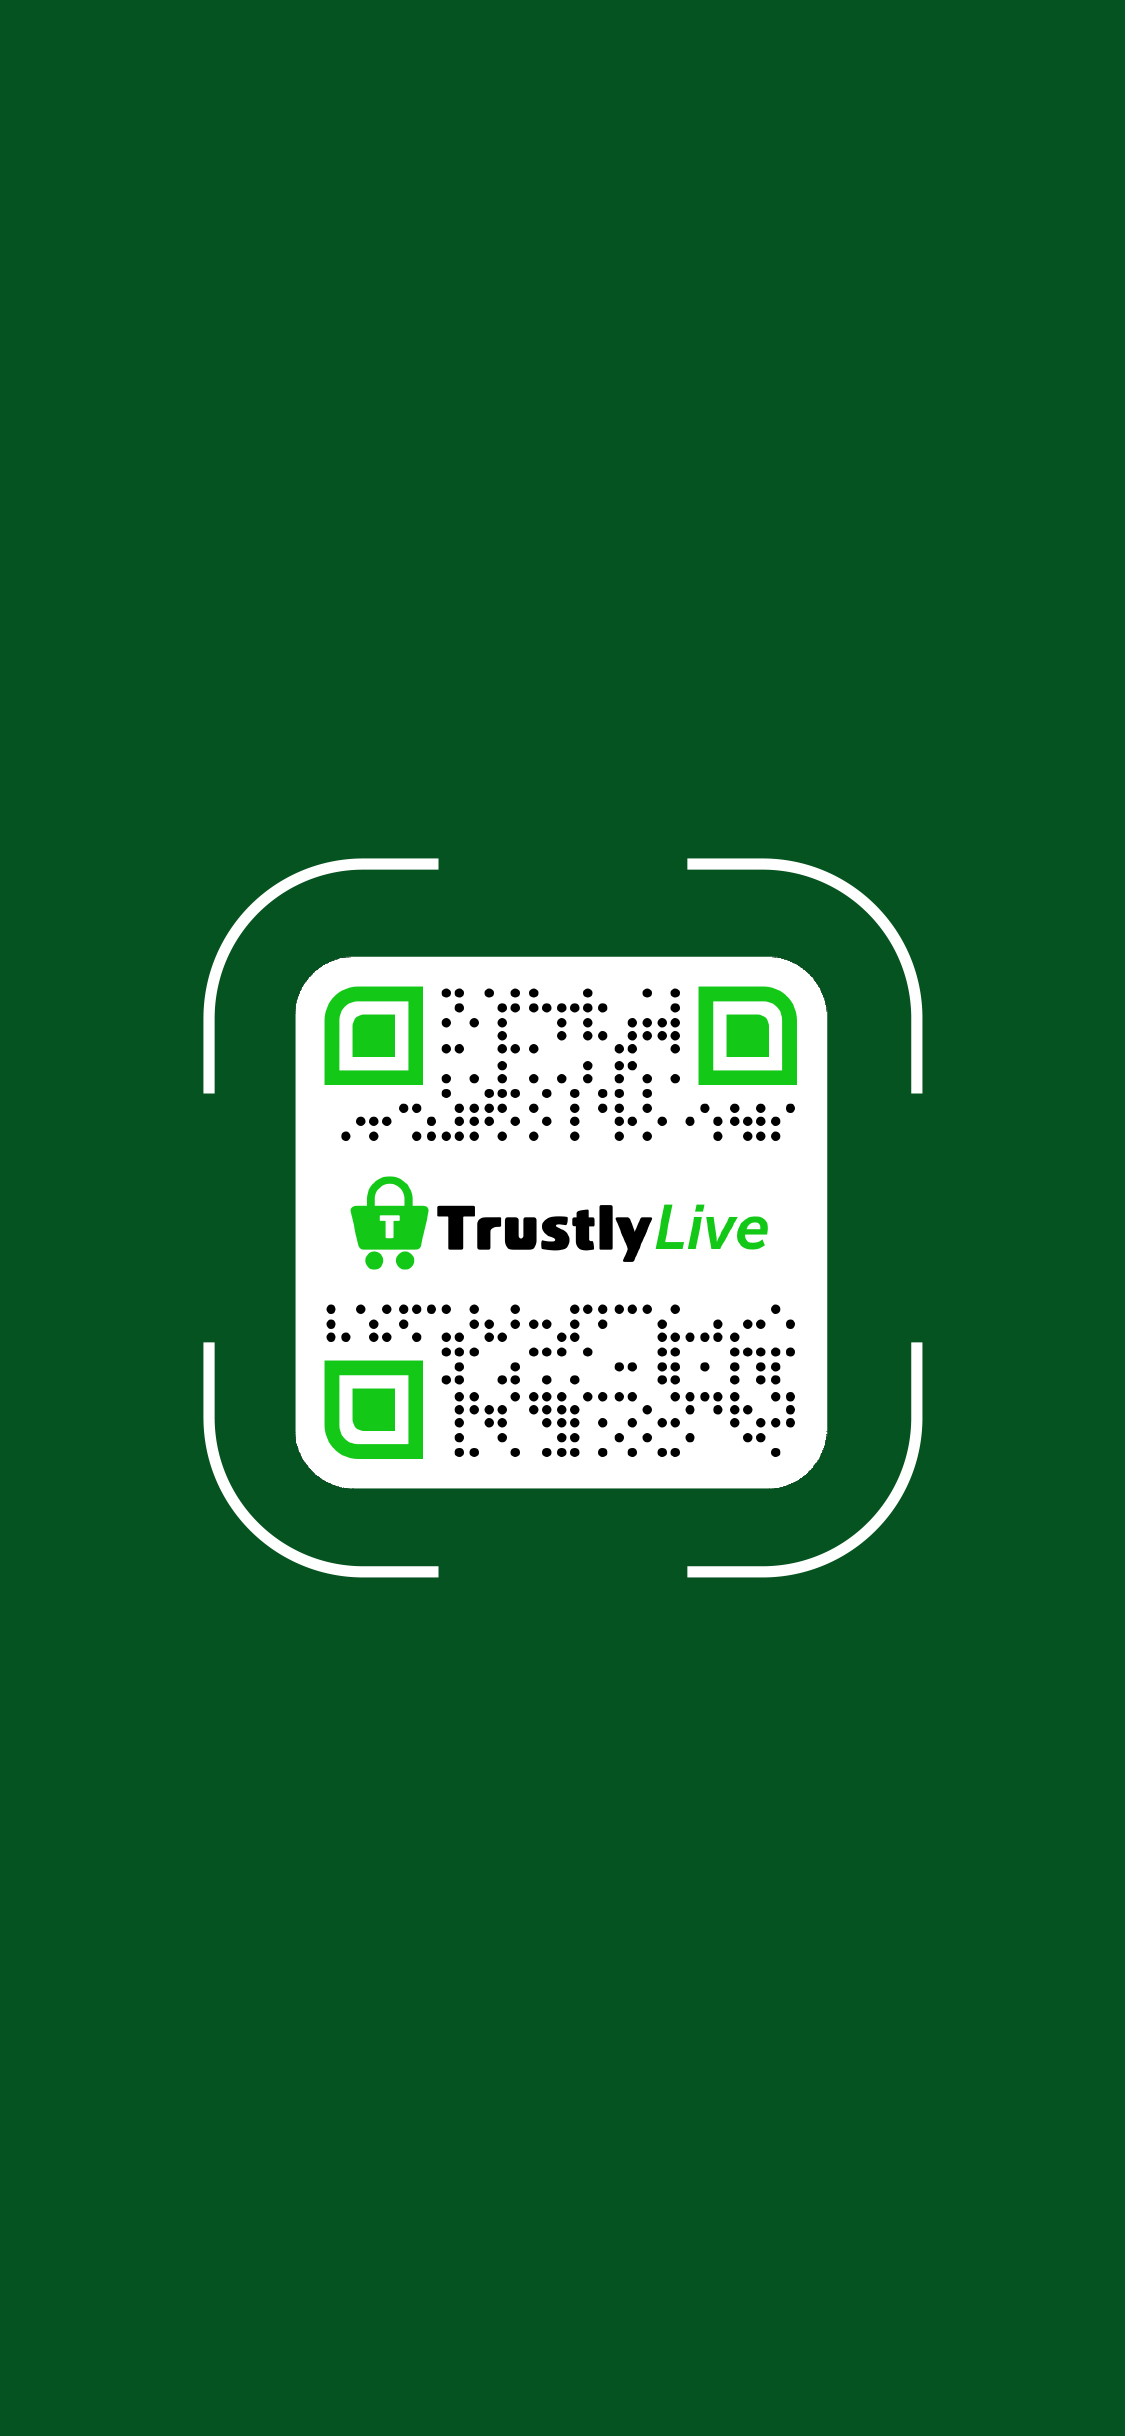 Trustly Gaming - Trustly Live cashless payment solution for land-based basinos